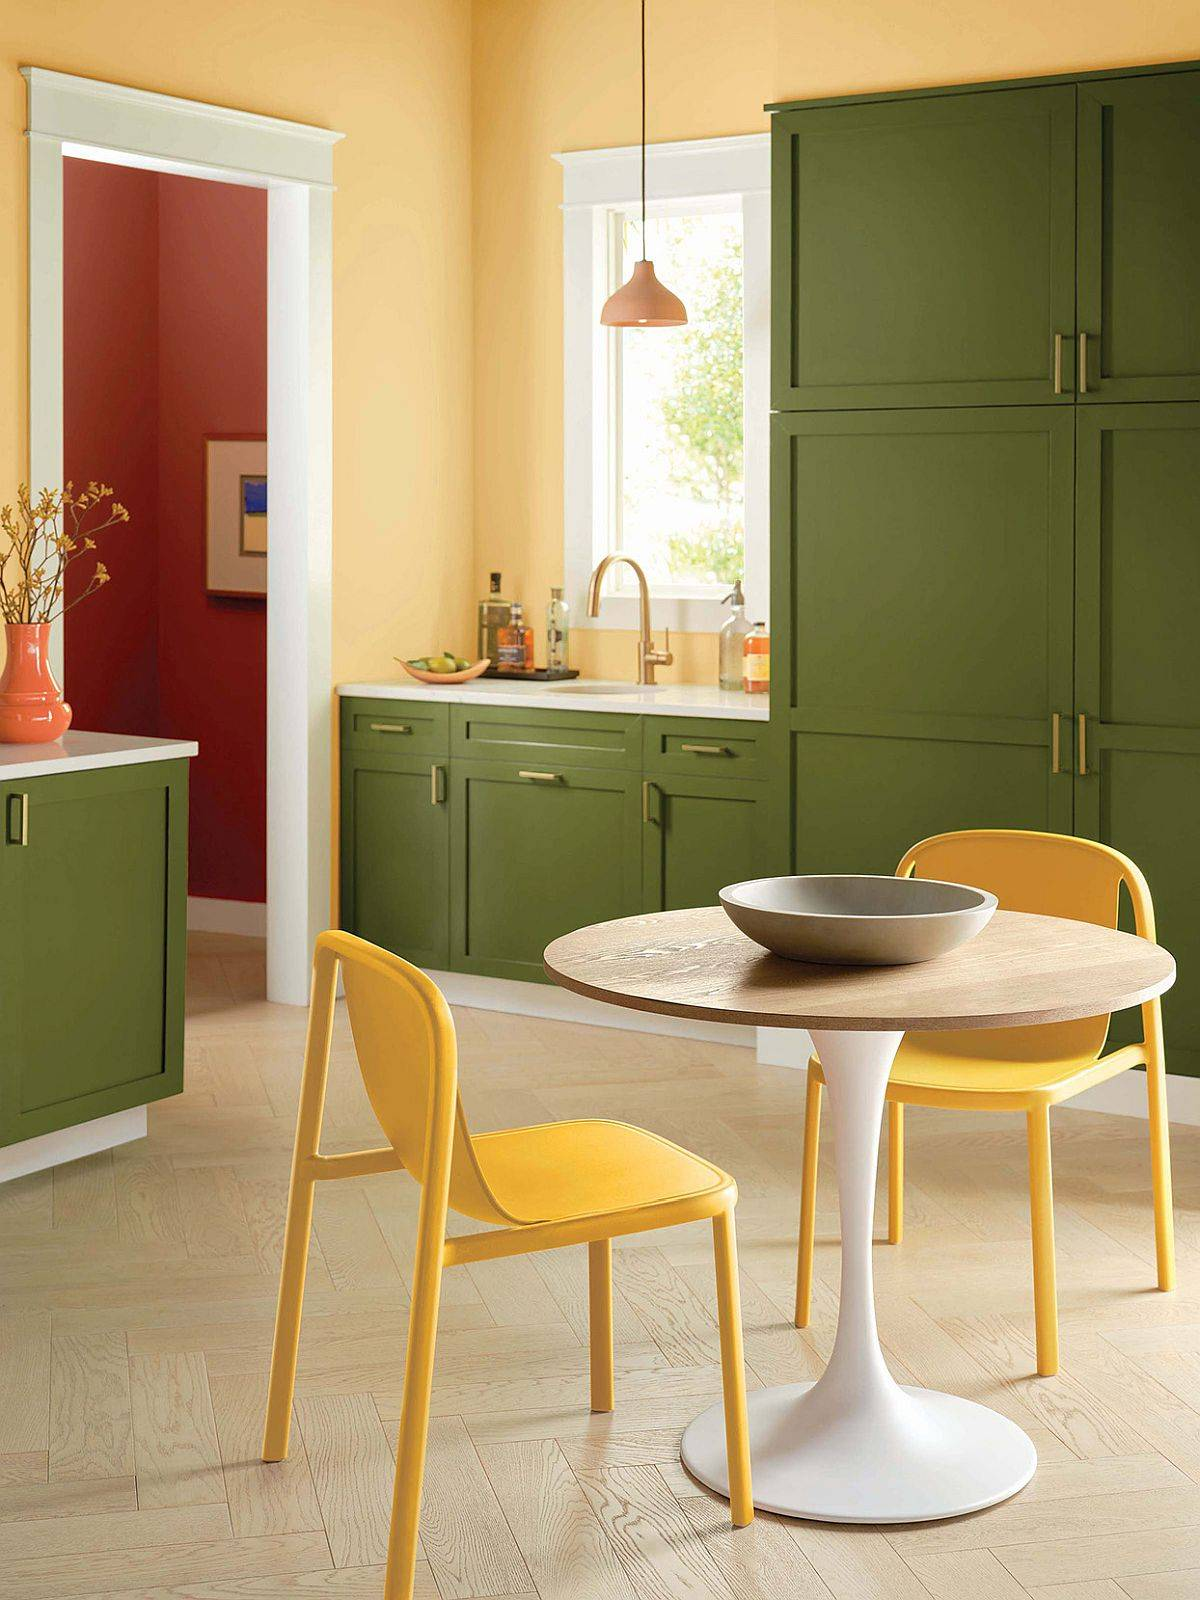 Gorgeous-green-cabinets-coupled-with-yellow-in-the-midcentury-modern-kitchen-with-a-pedastal-dining-table-83254